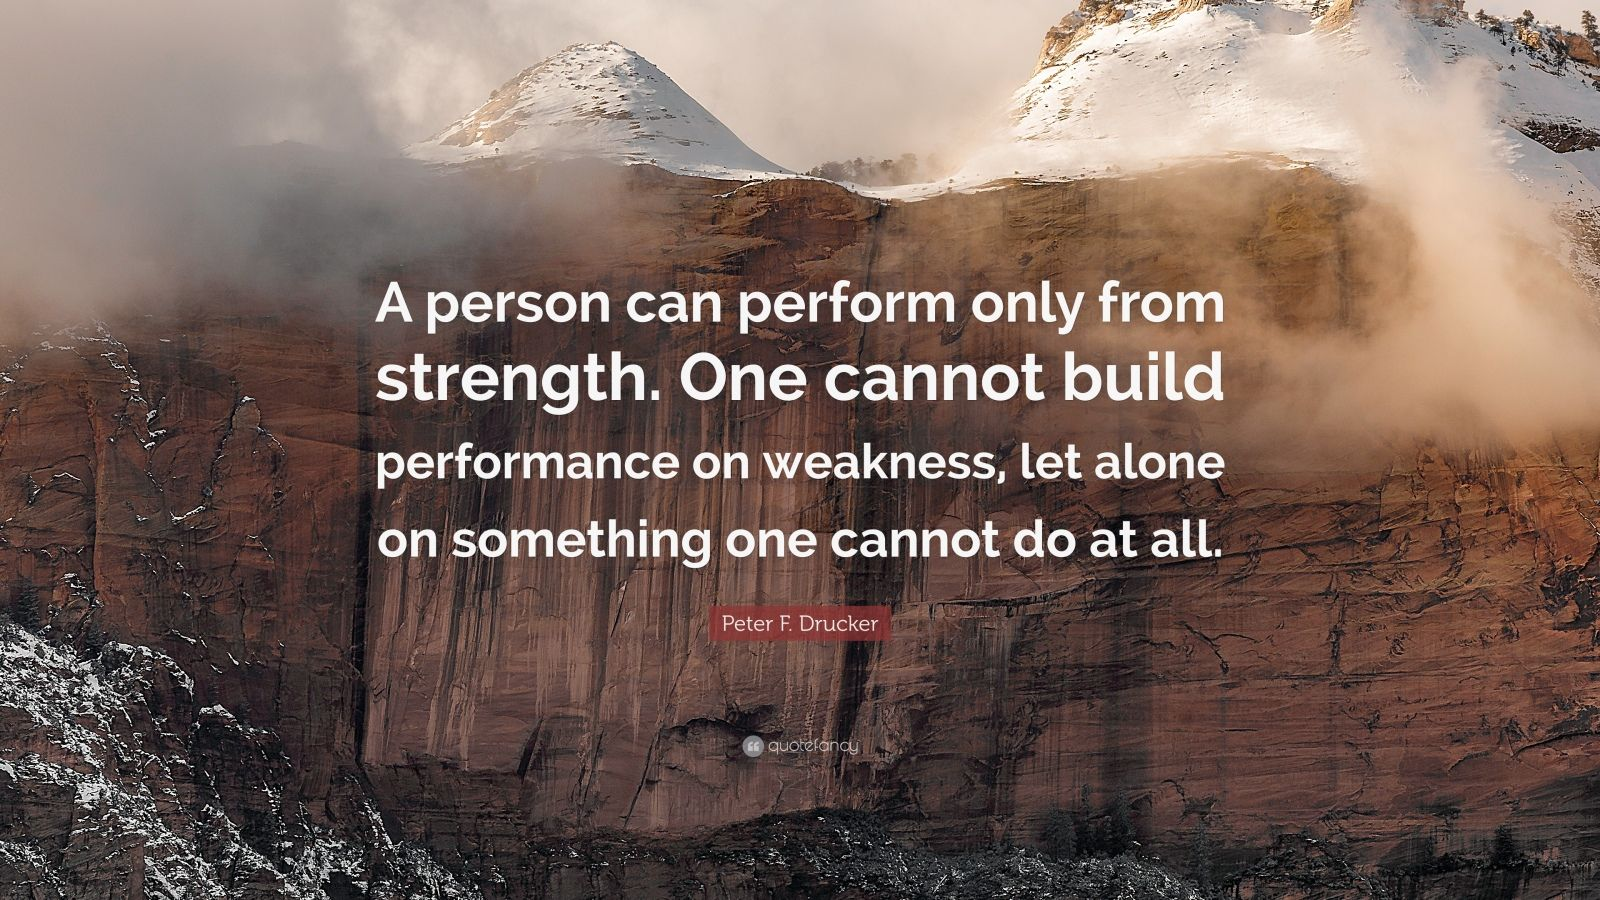 """Peter F. Drucker Quote: """"A person can perform only from strength. One cannot build performance on weakness, let alone on something one cannot do at all."""""""